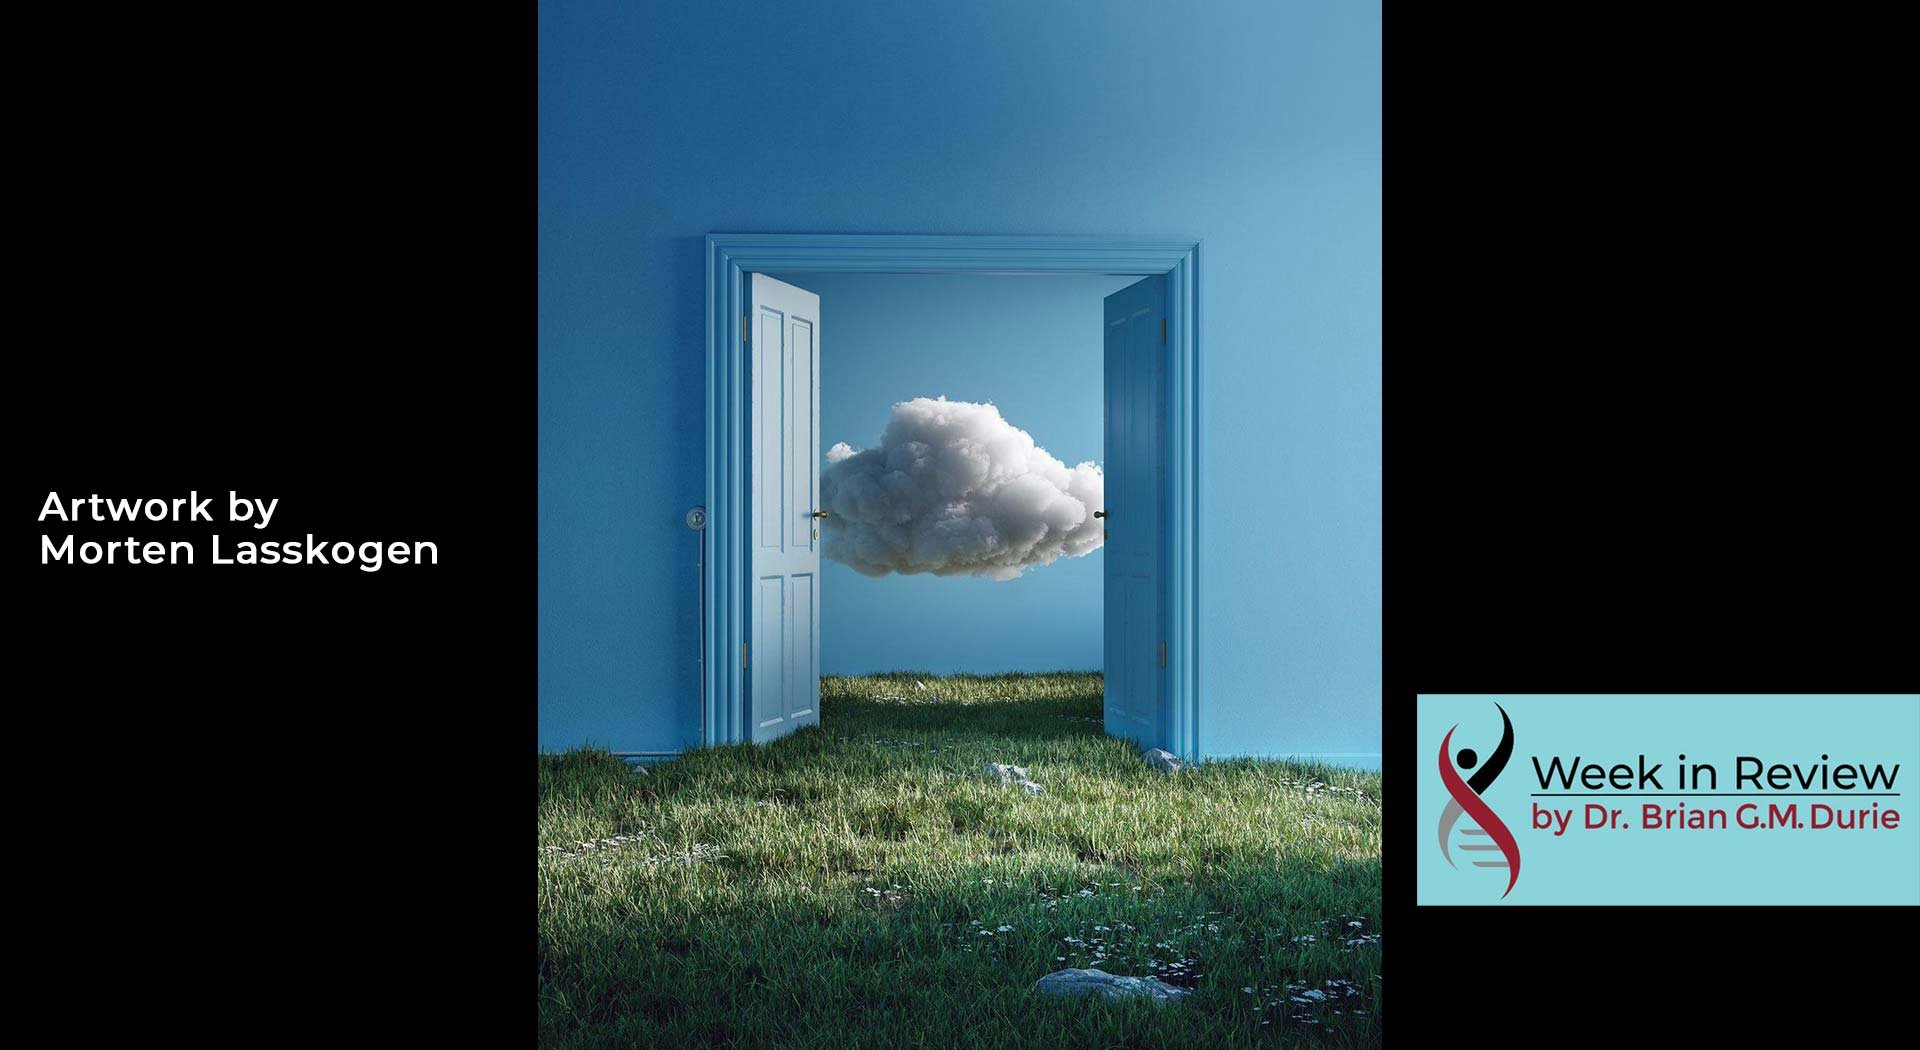 A cloud behind an open blue door artwork by Morten Lasskogen